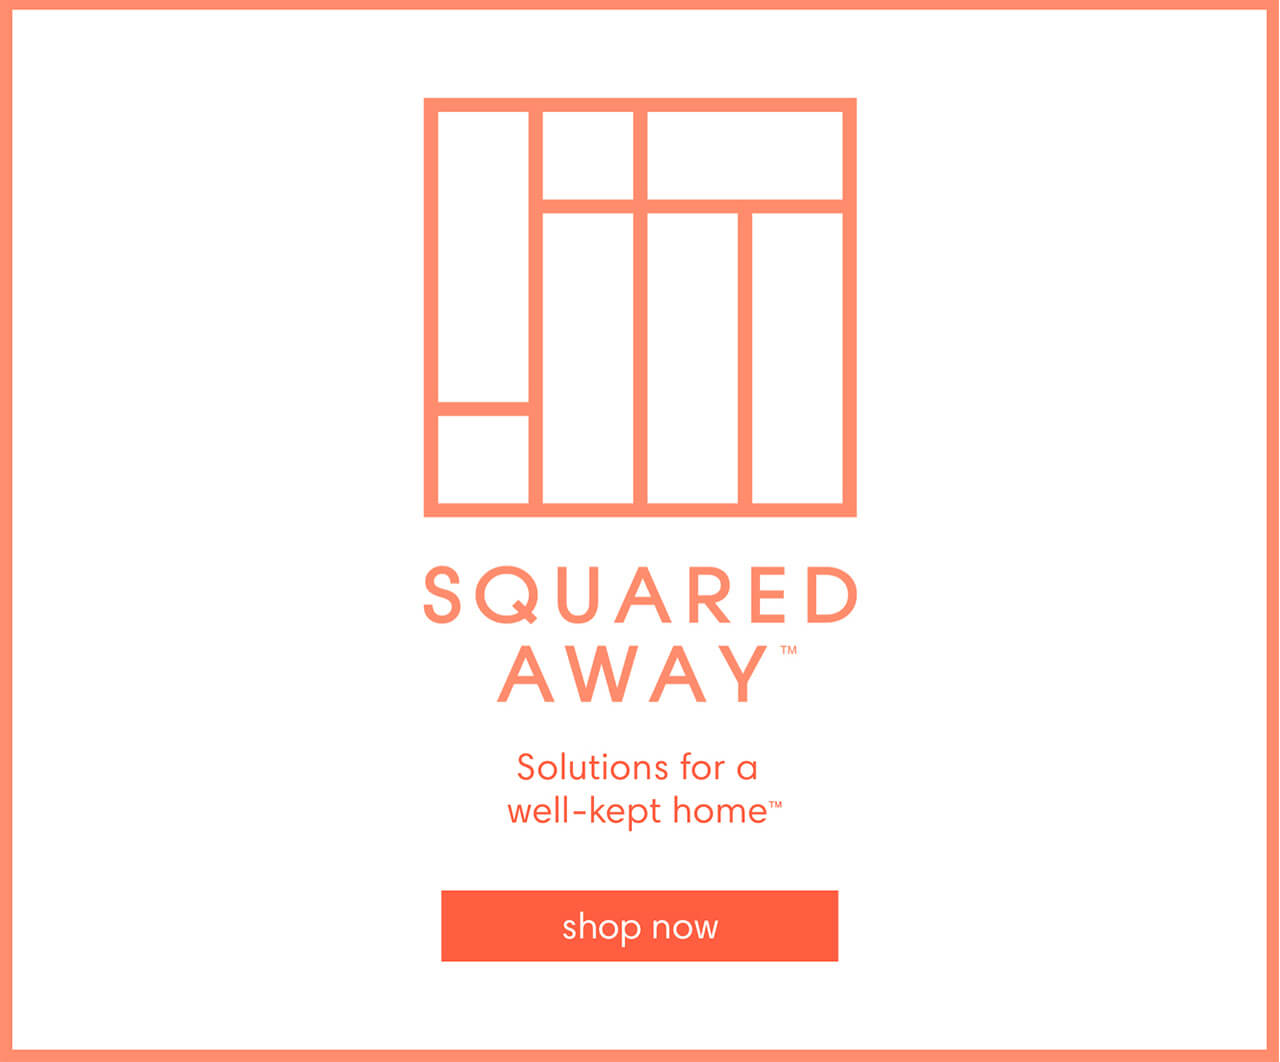 SQUARED AWAY™ Solutions for a well-kept home™ shop now